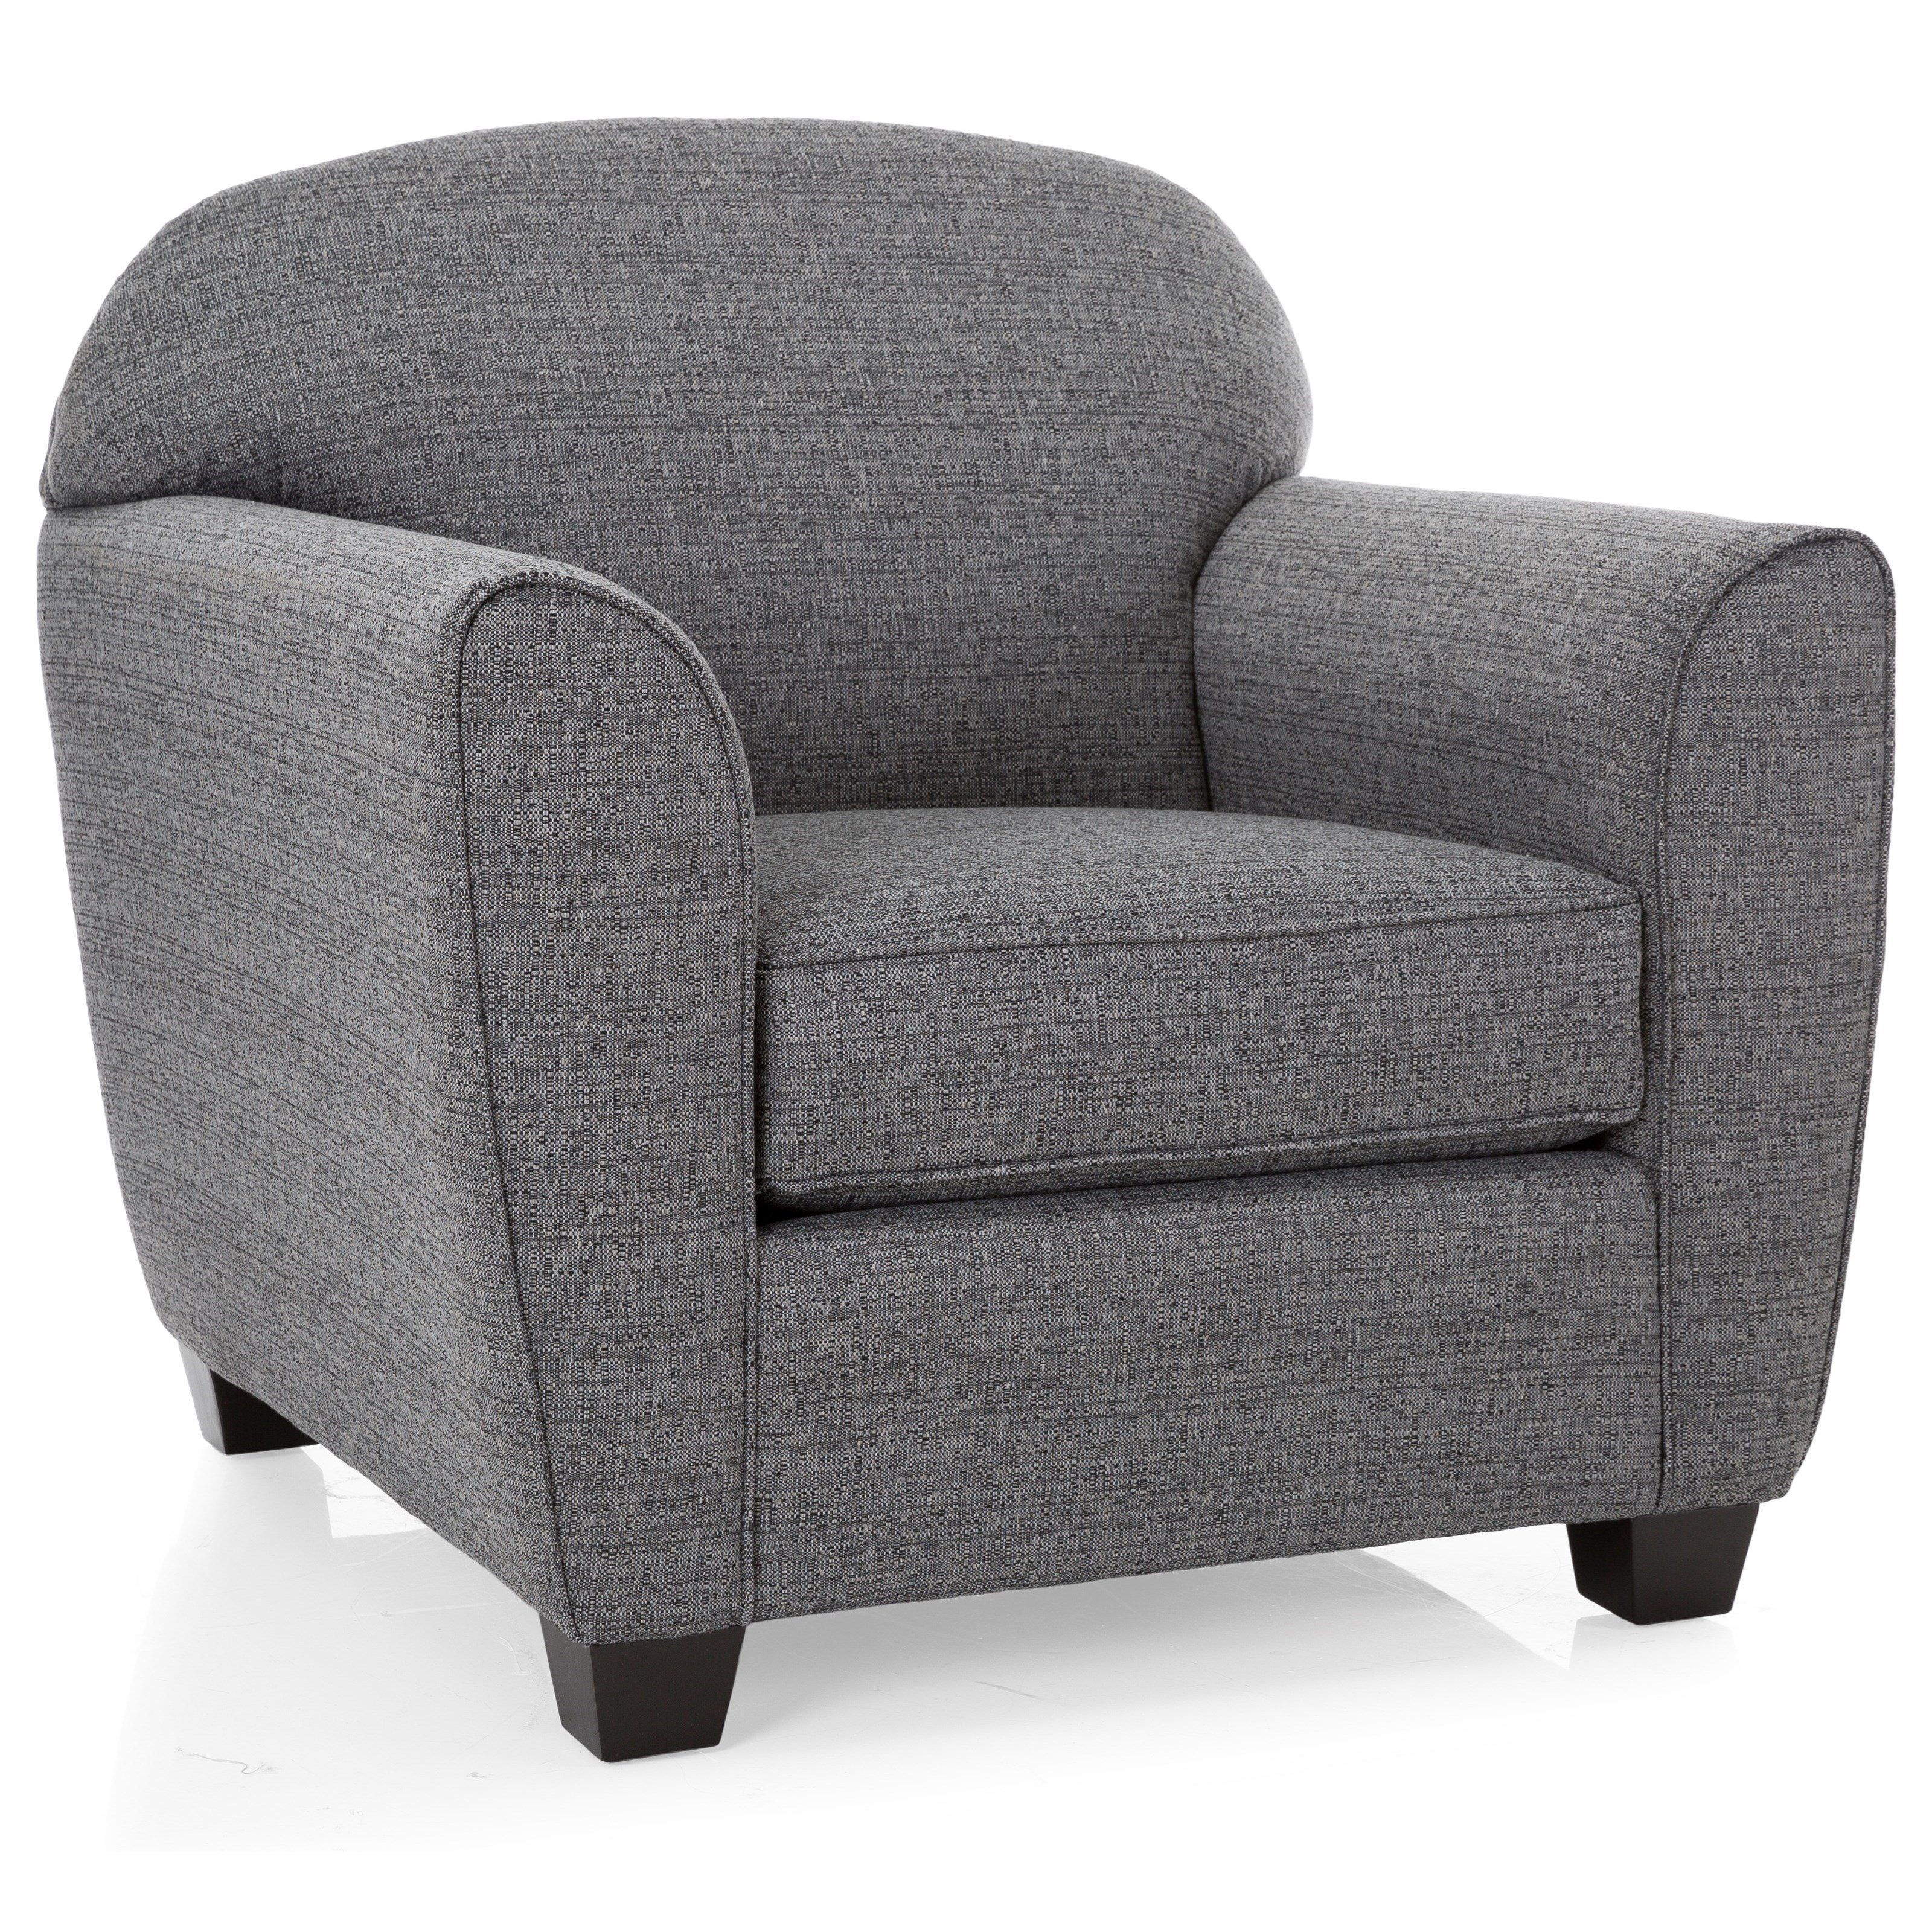 2317 Upholstered Chair by Decor-Rest at Johnny Janosik